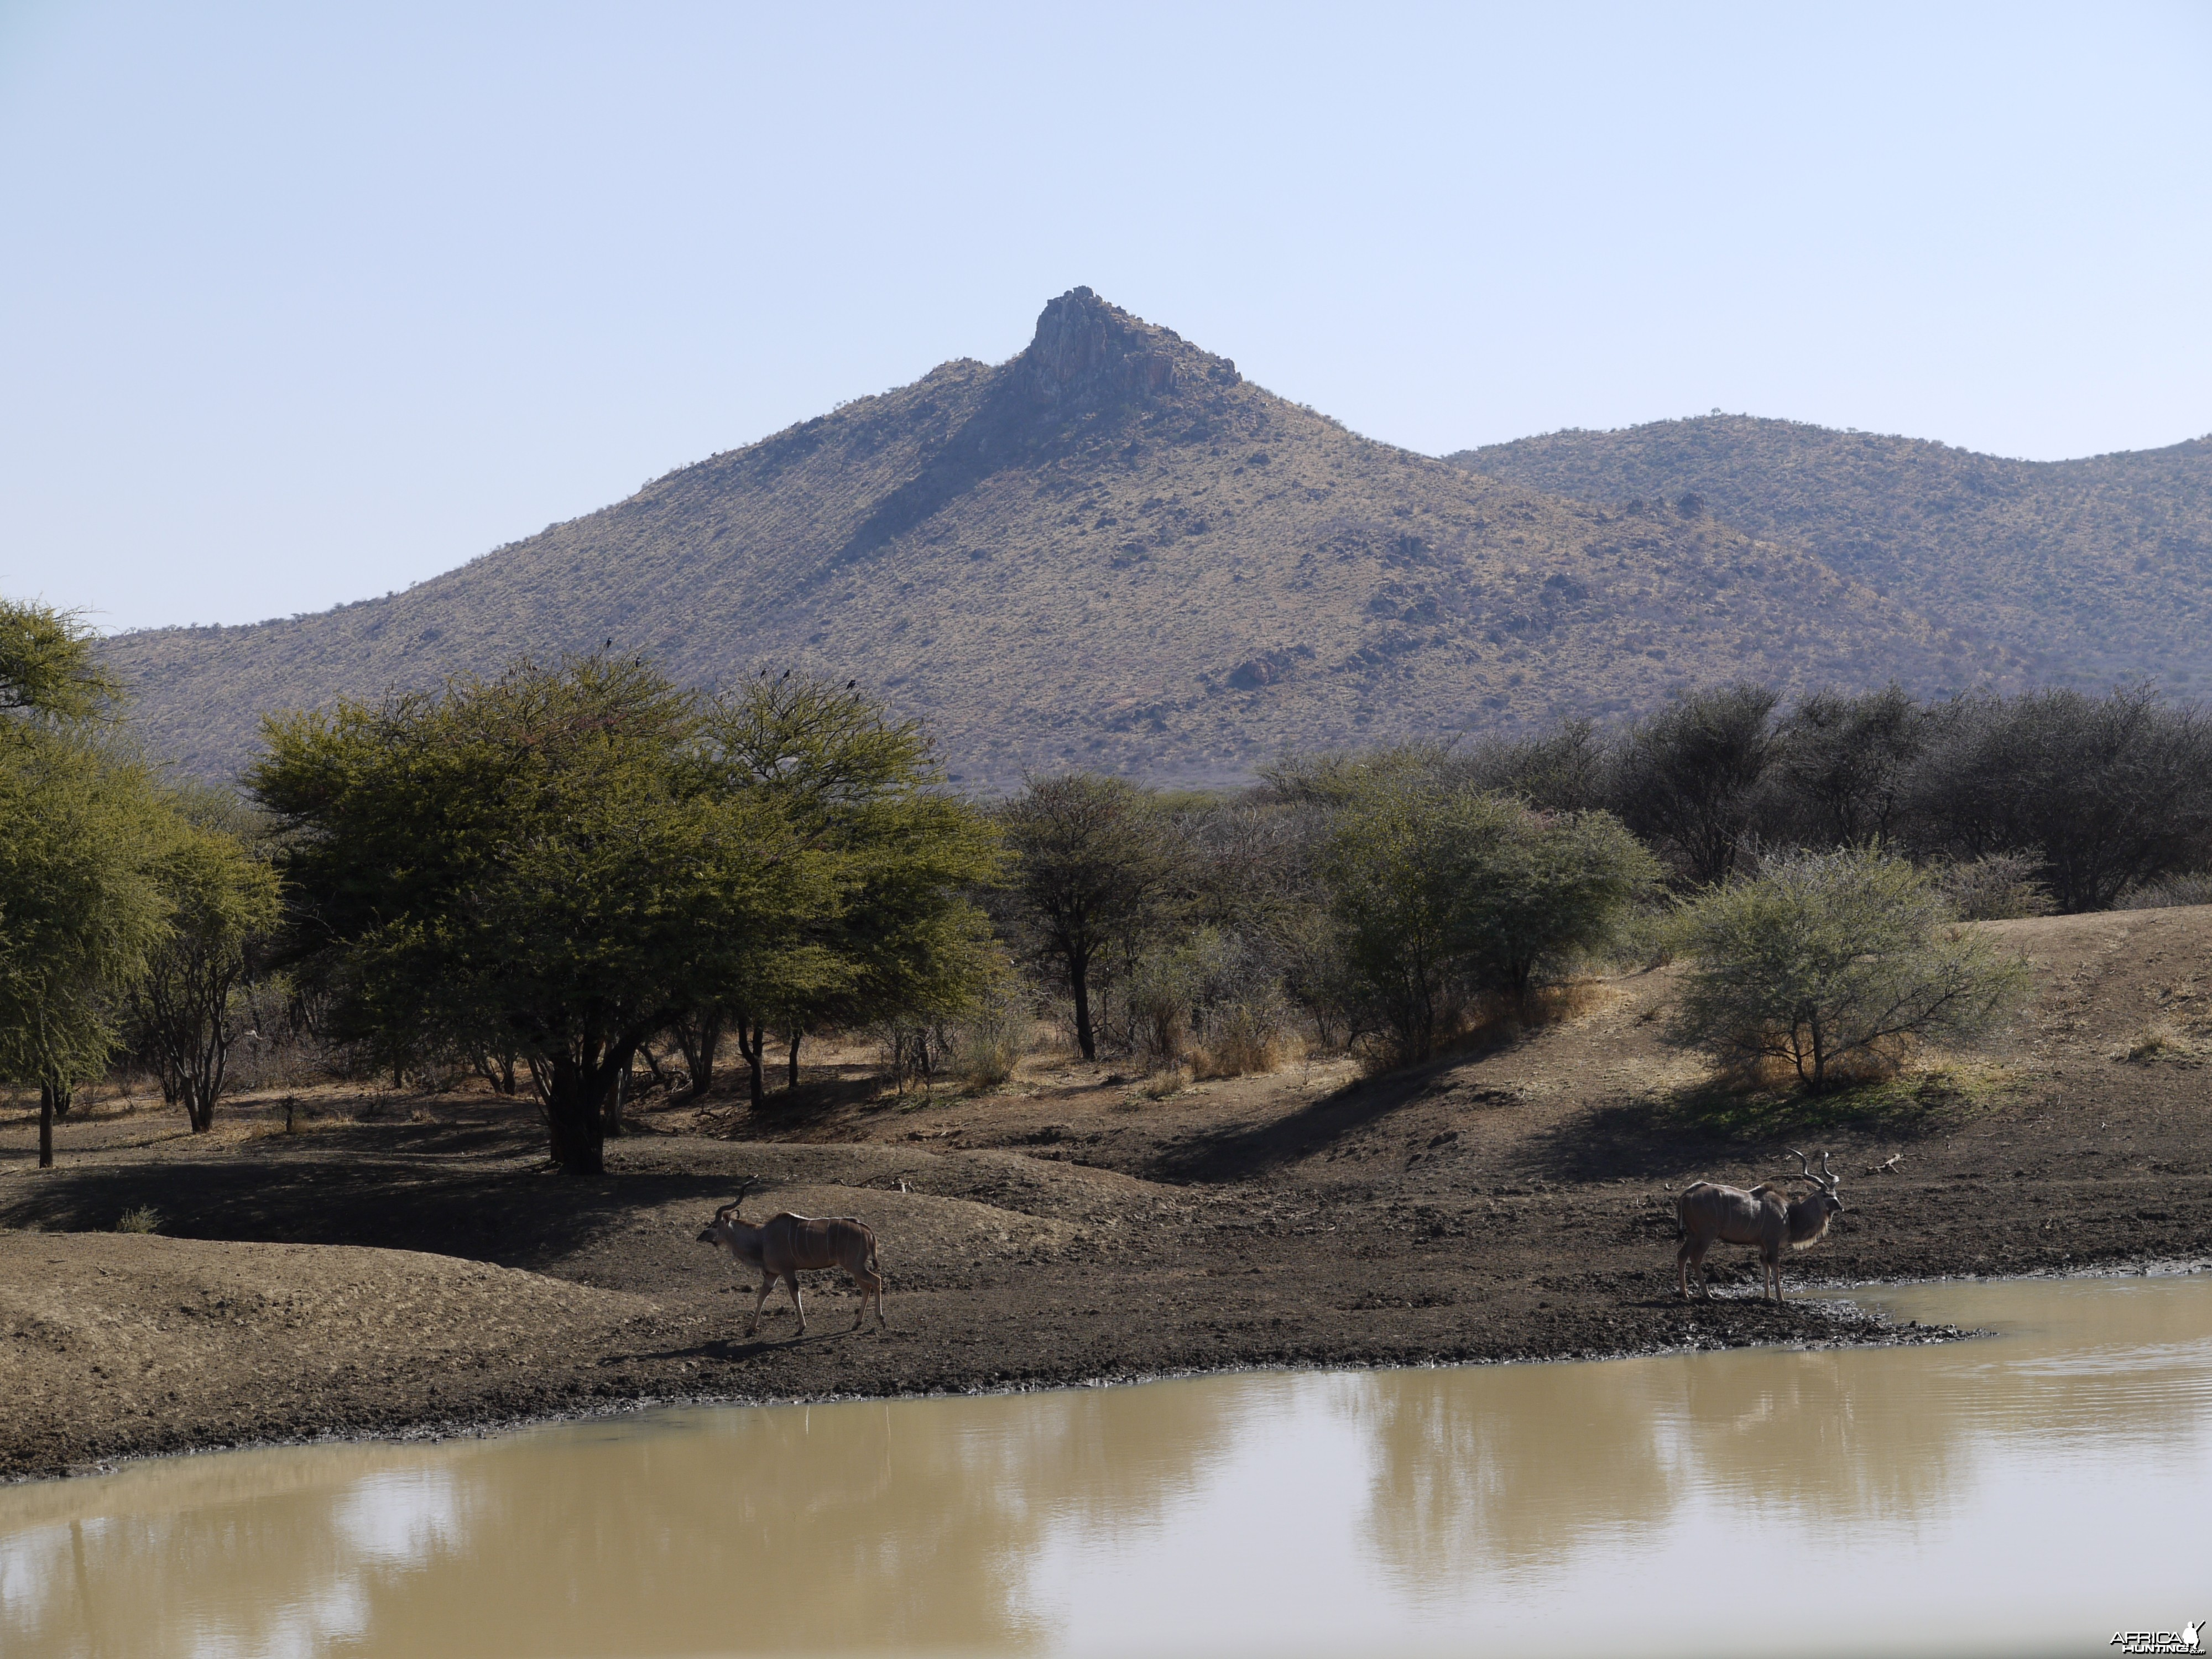 Kudu at waterhole in Namibia